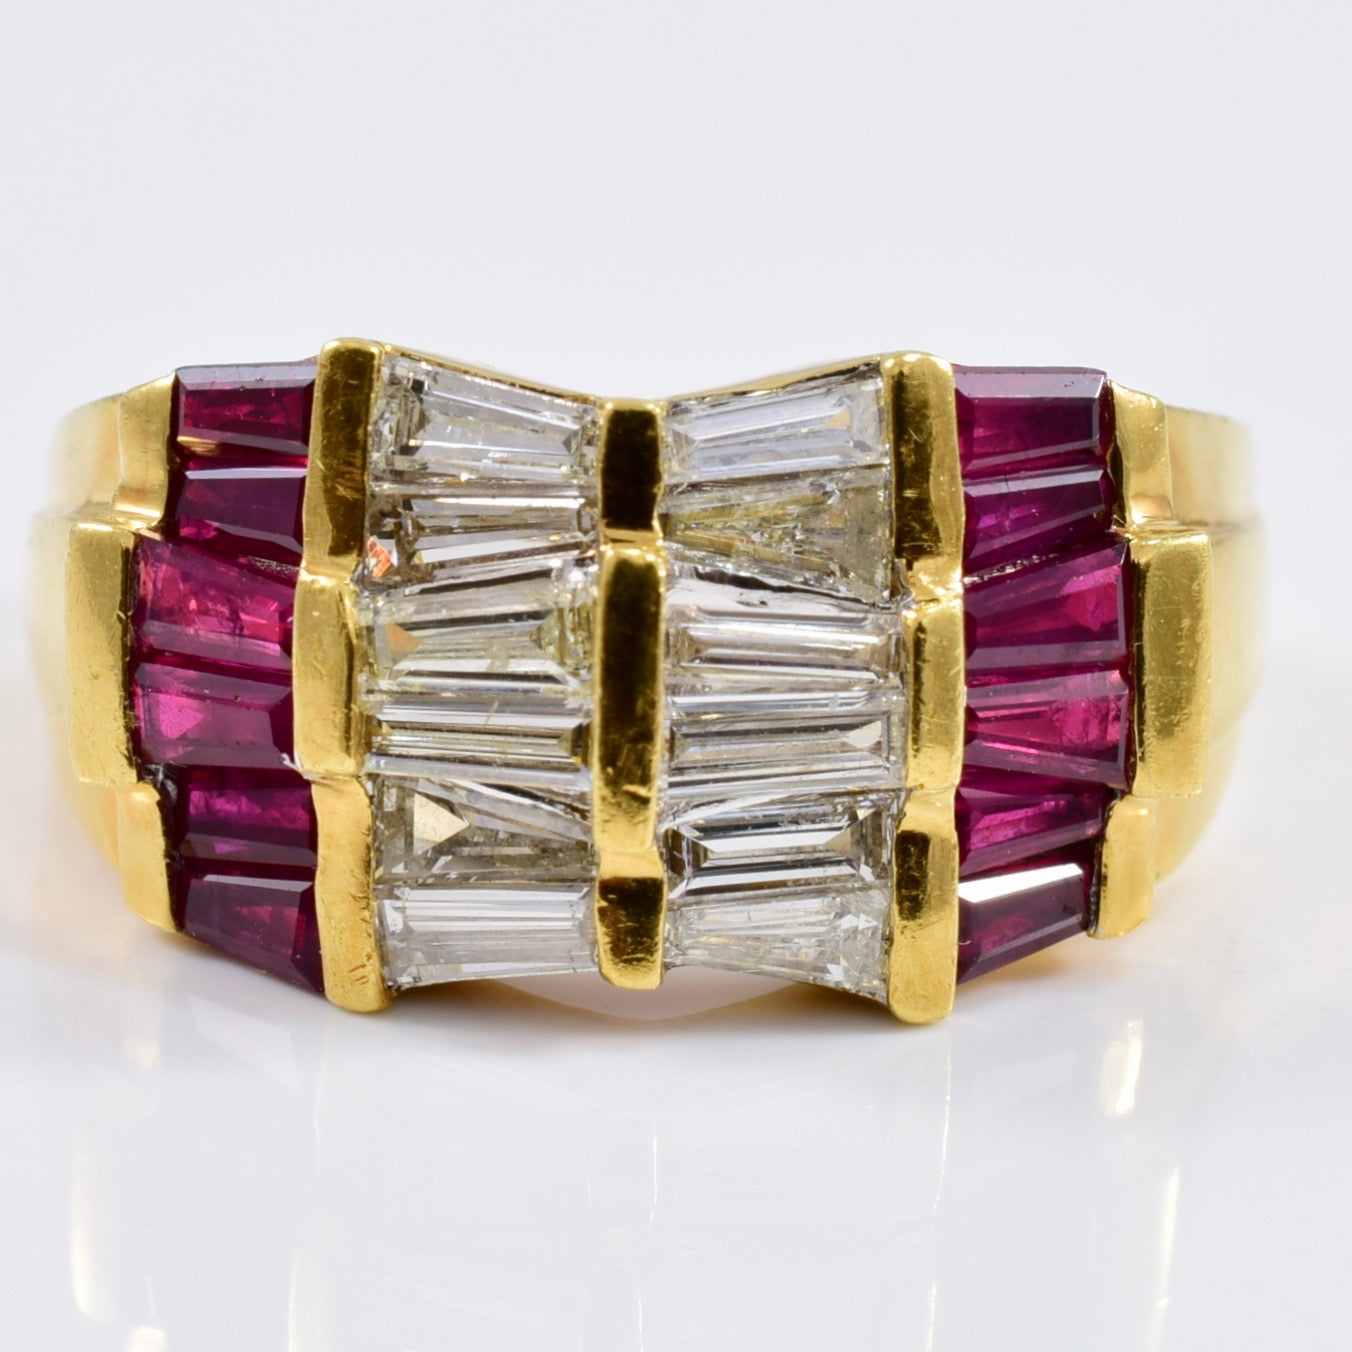 Dimond and Ruby Ring | 0.60 ctw SZ 7 |